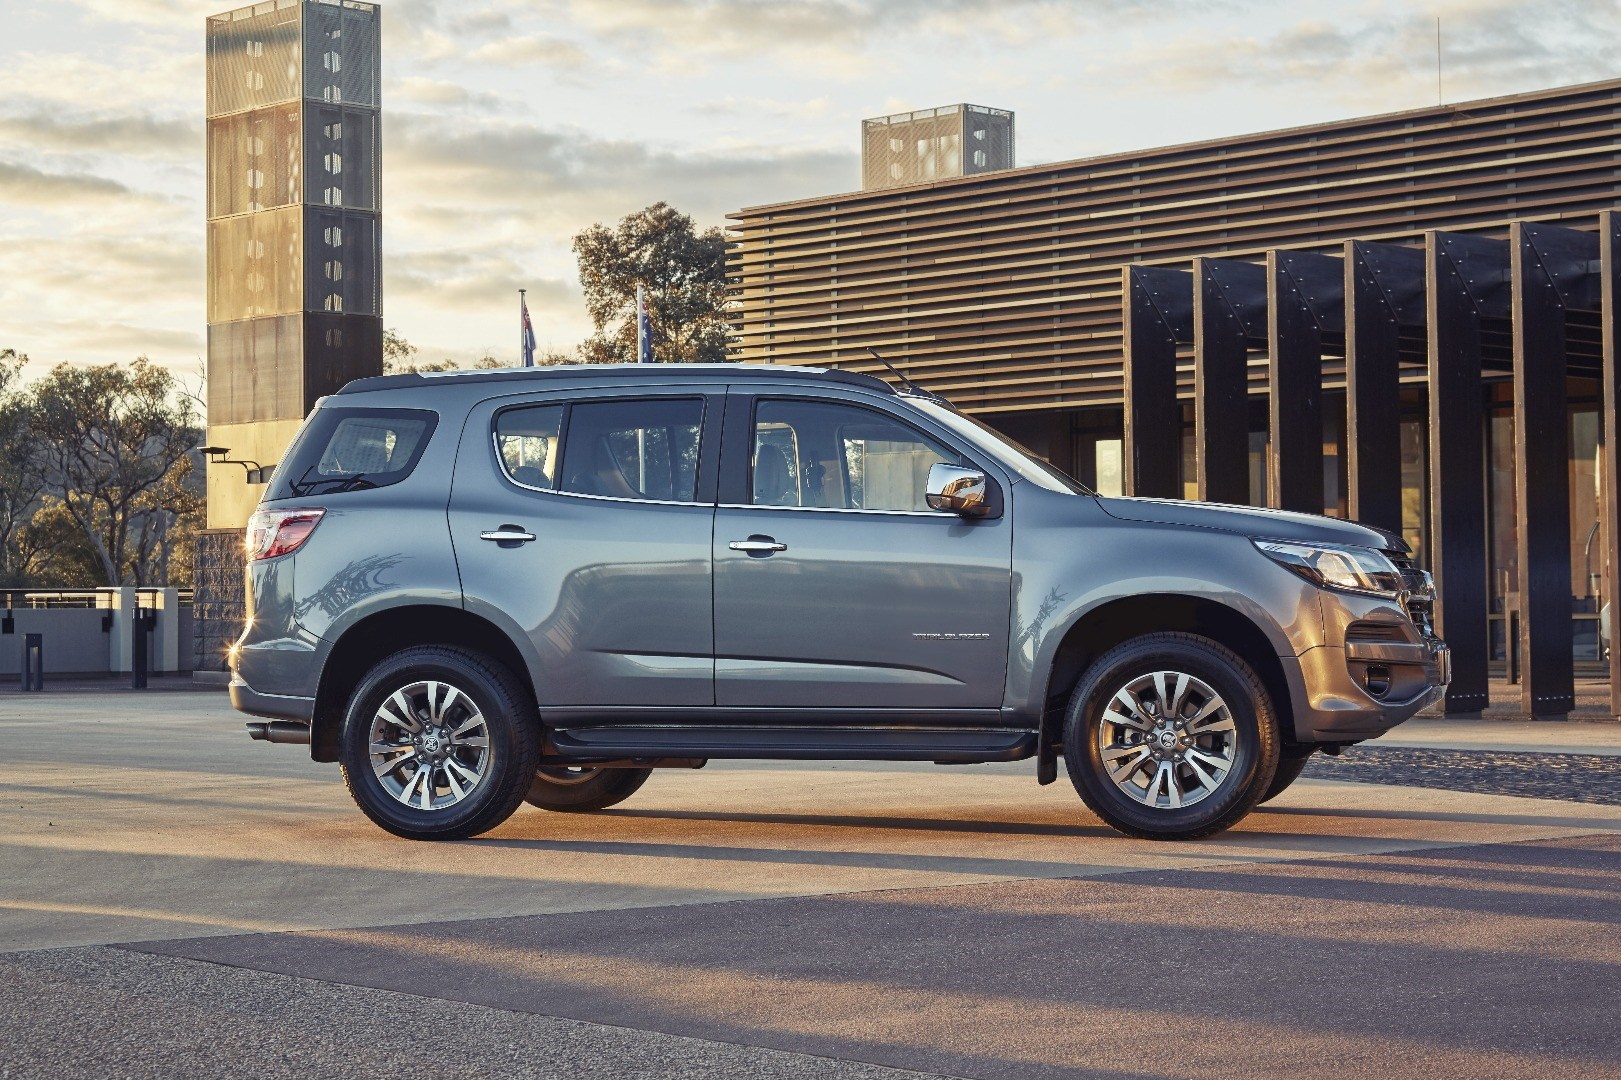 Holden's All-New Trailblazer SUV Enters The Fray Thumbnail